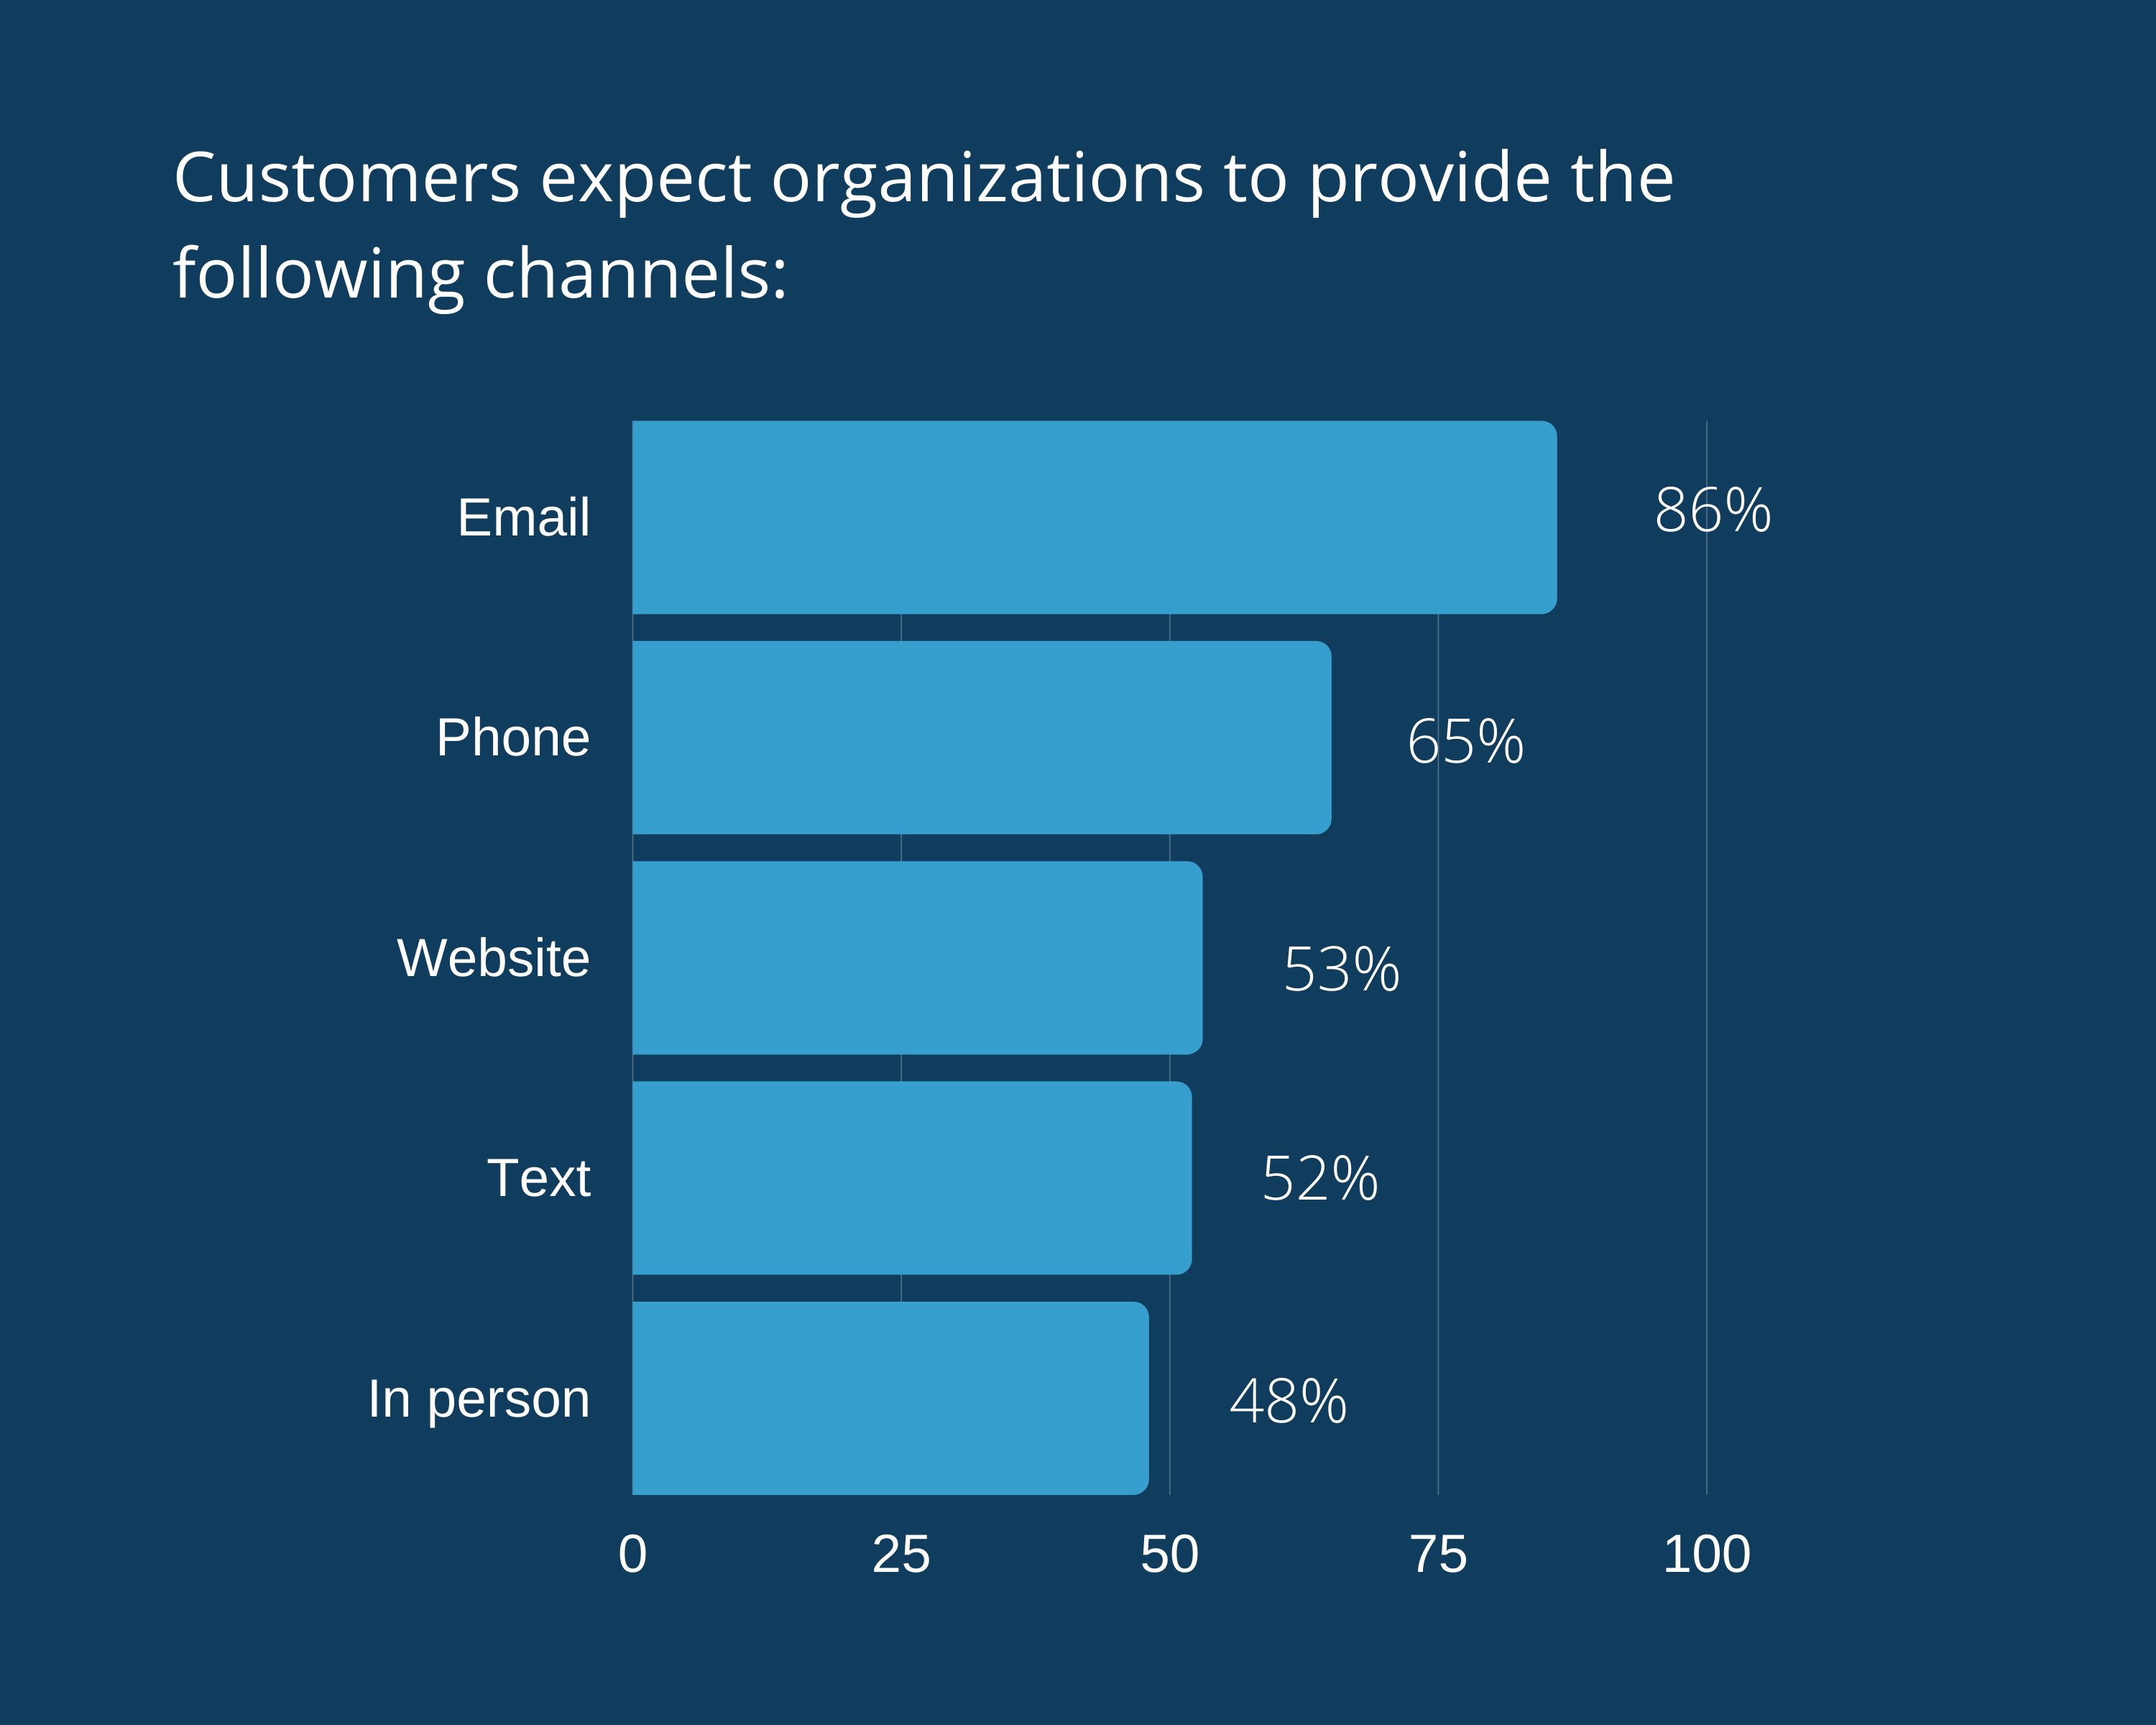 Customers expect organizations to provide the following channels